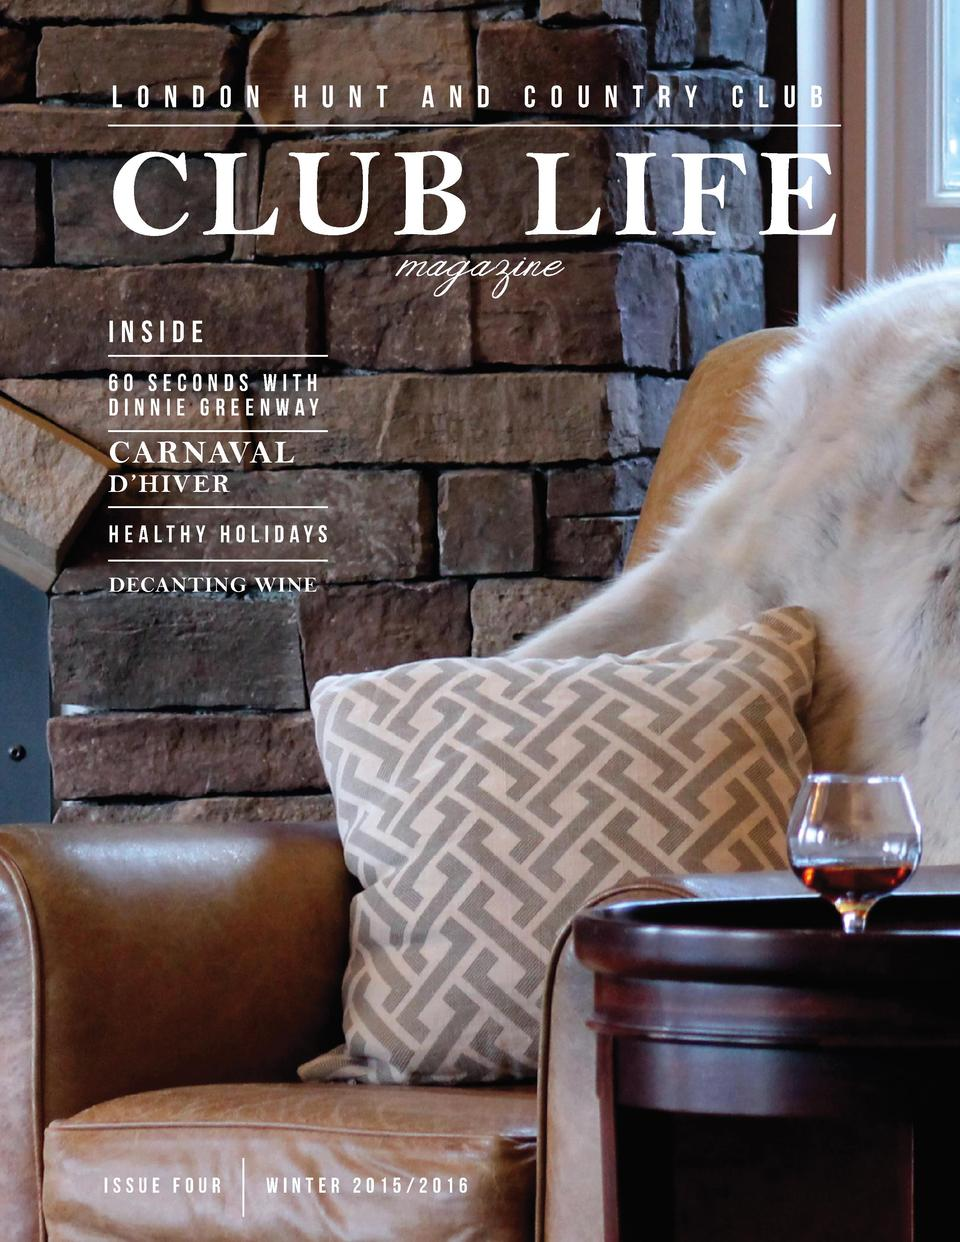 L O N D O N  H U N T  A N D  C O U N T R Y  C L U B  CLUB LIFE magazine  INSIDE 60 seconds with DINNIE GREENWAY  CARNAVAL ...